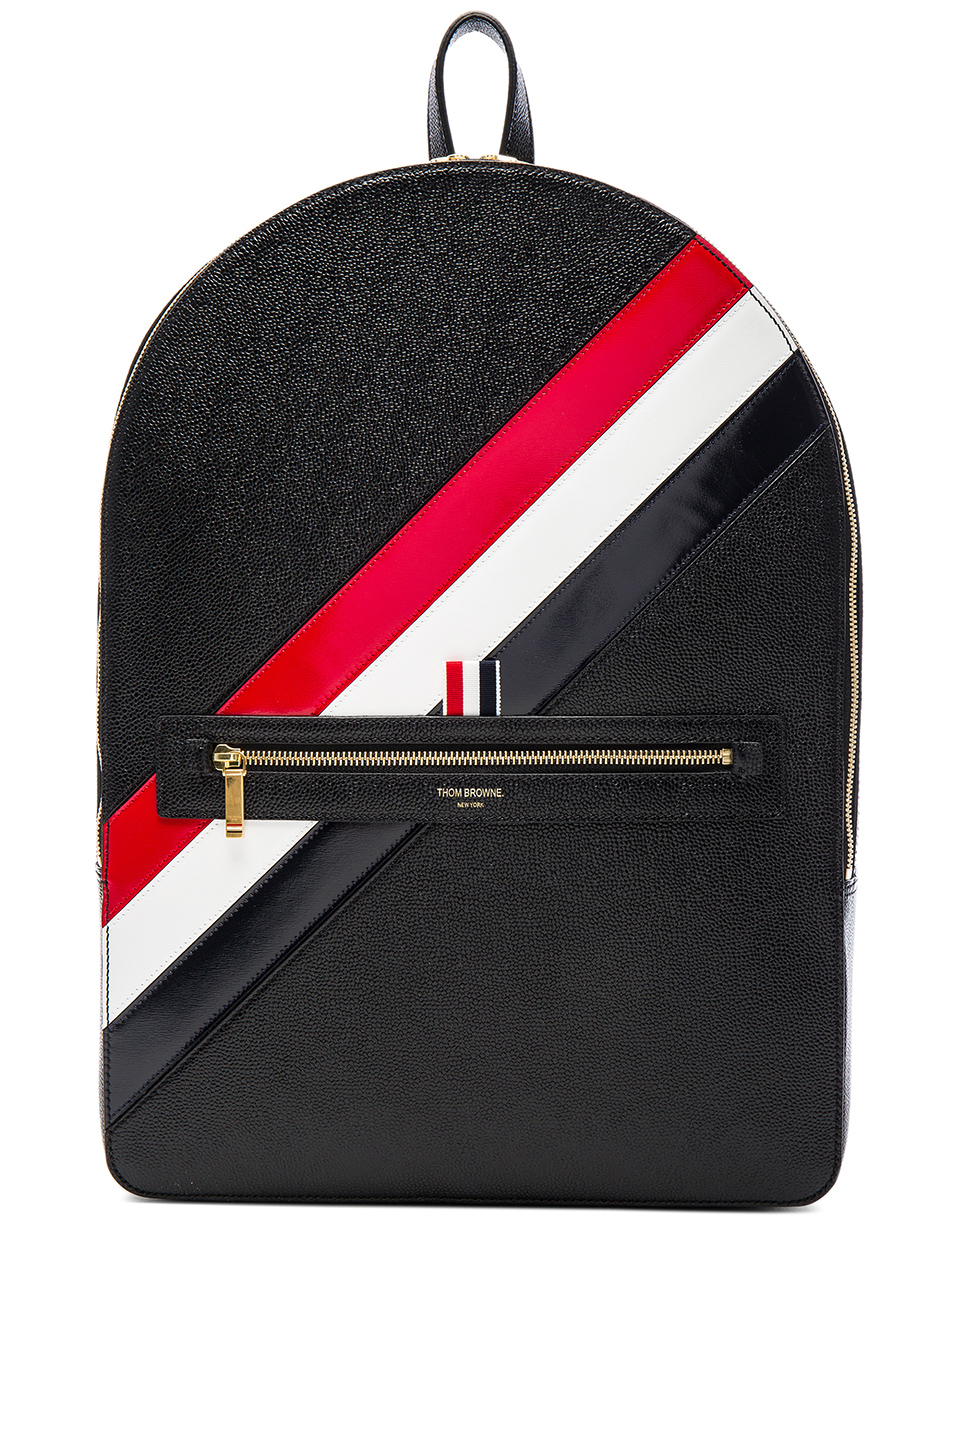 Thom Browne Diagonal Stripe Backpack in Black